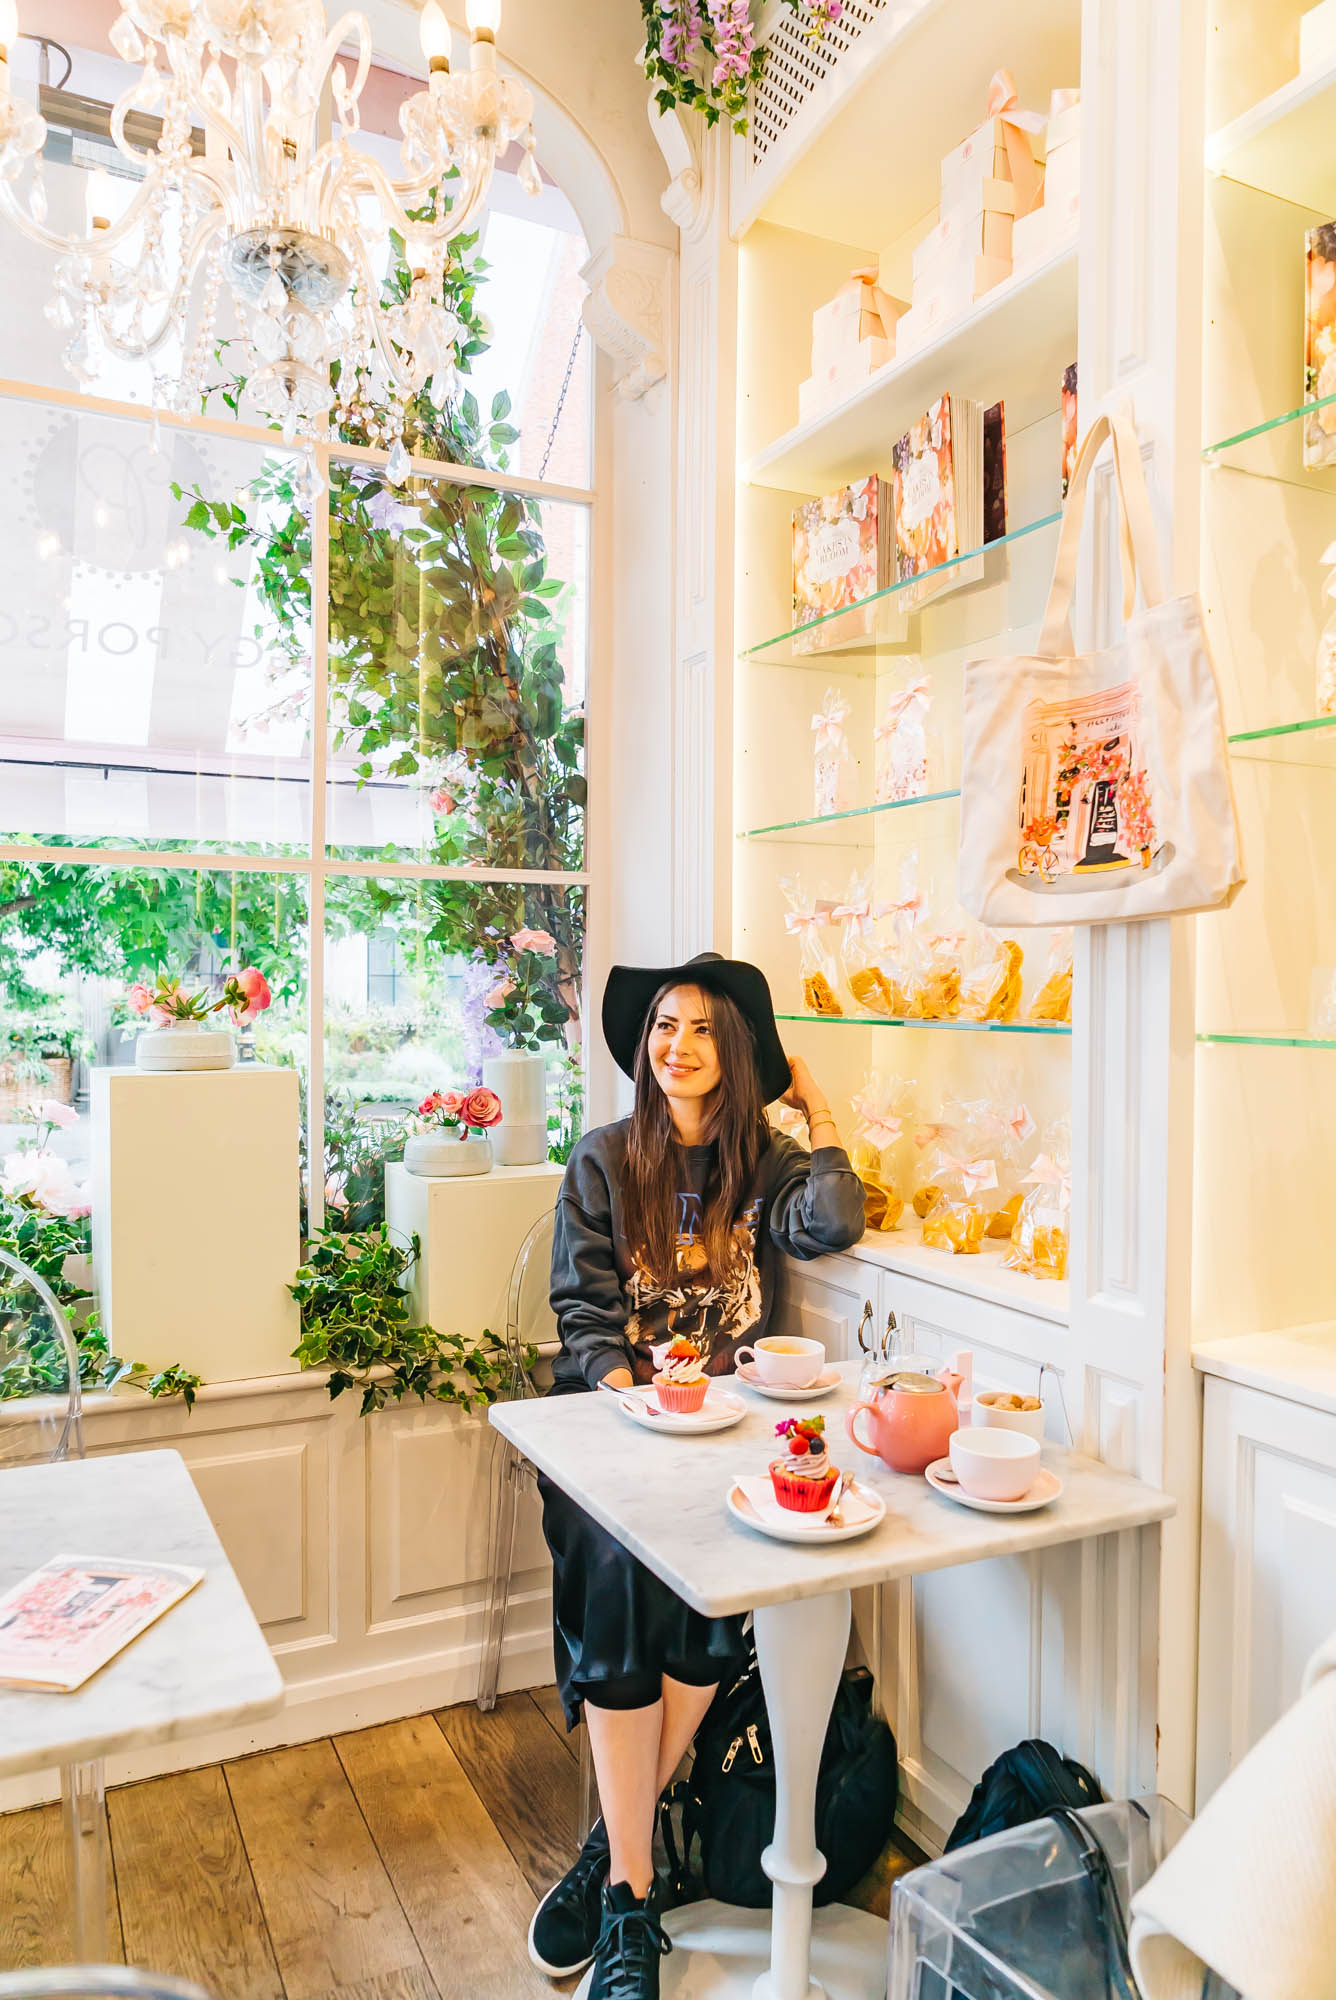 Such a cute cafe at Peggy Porschen in London